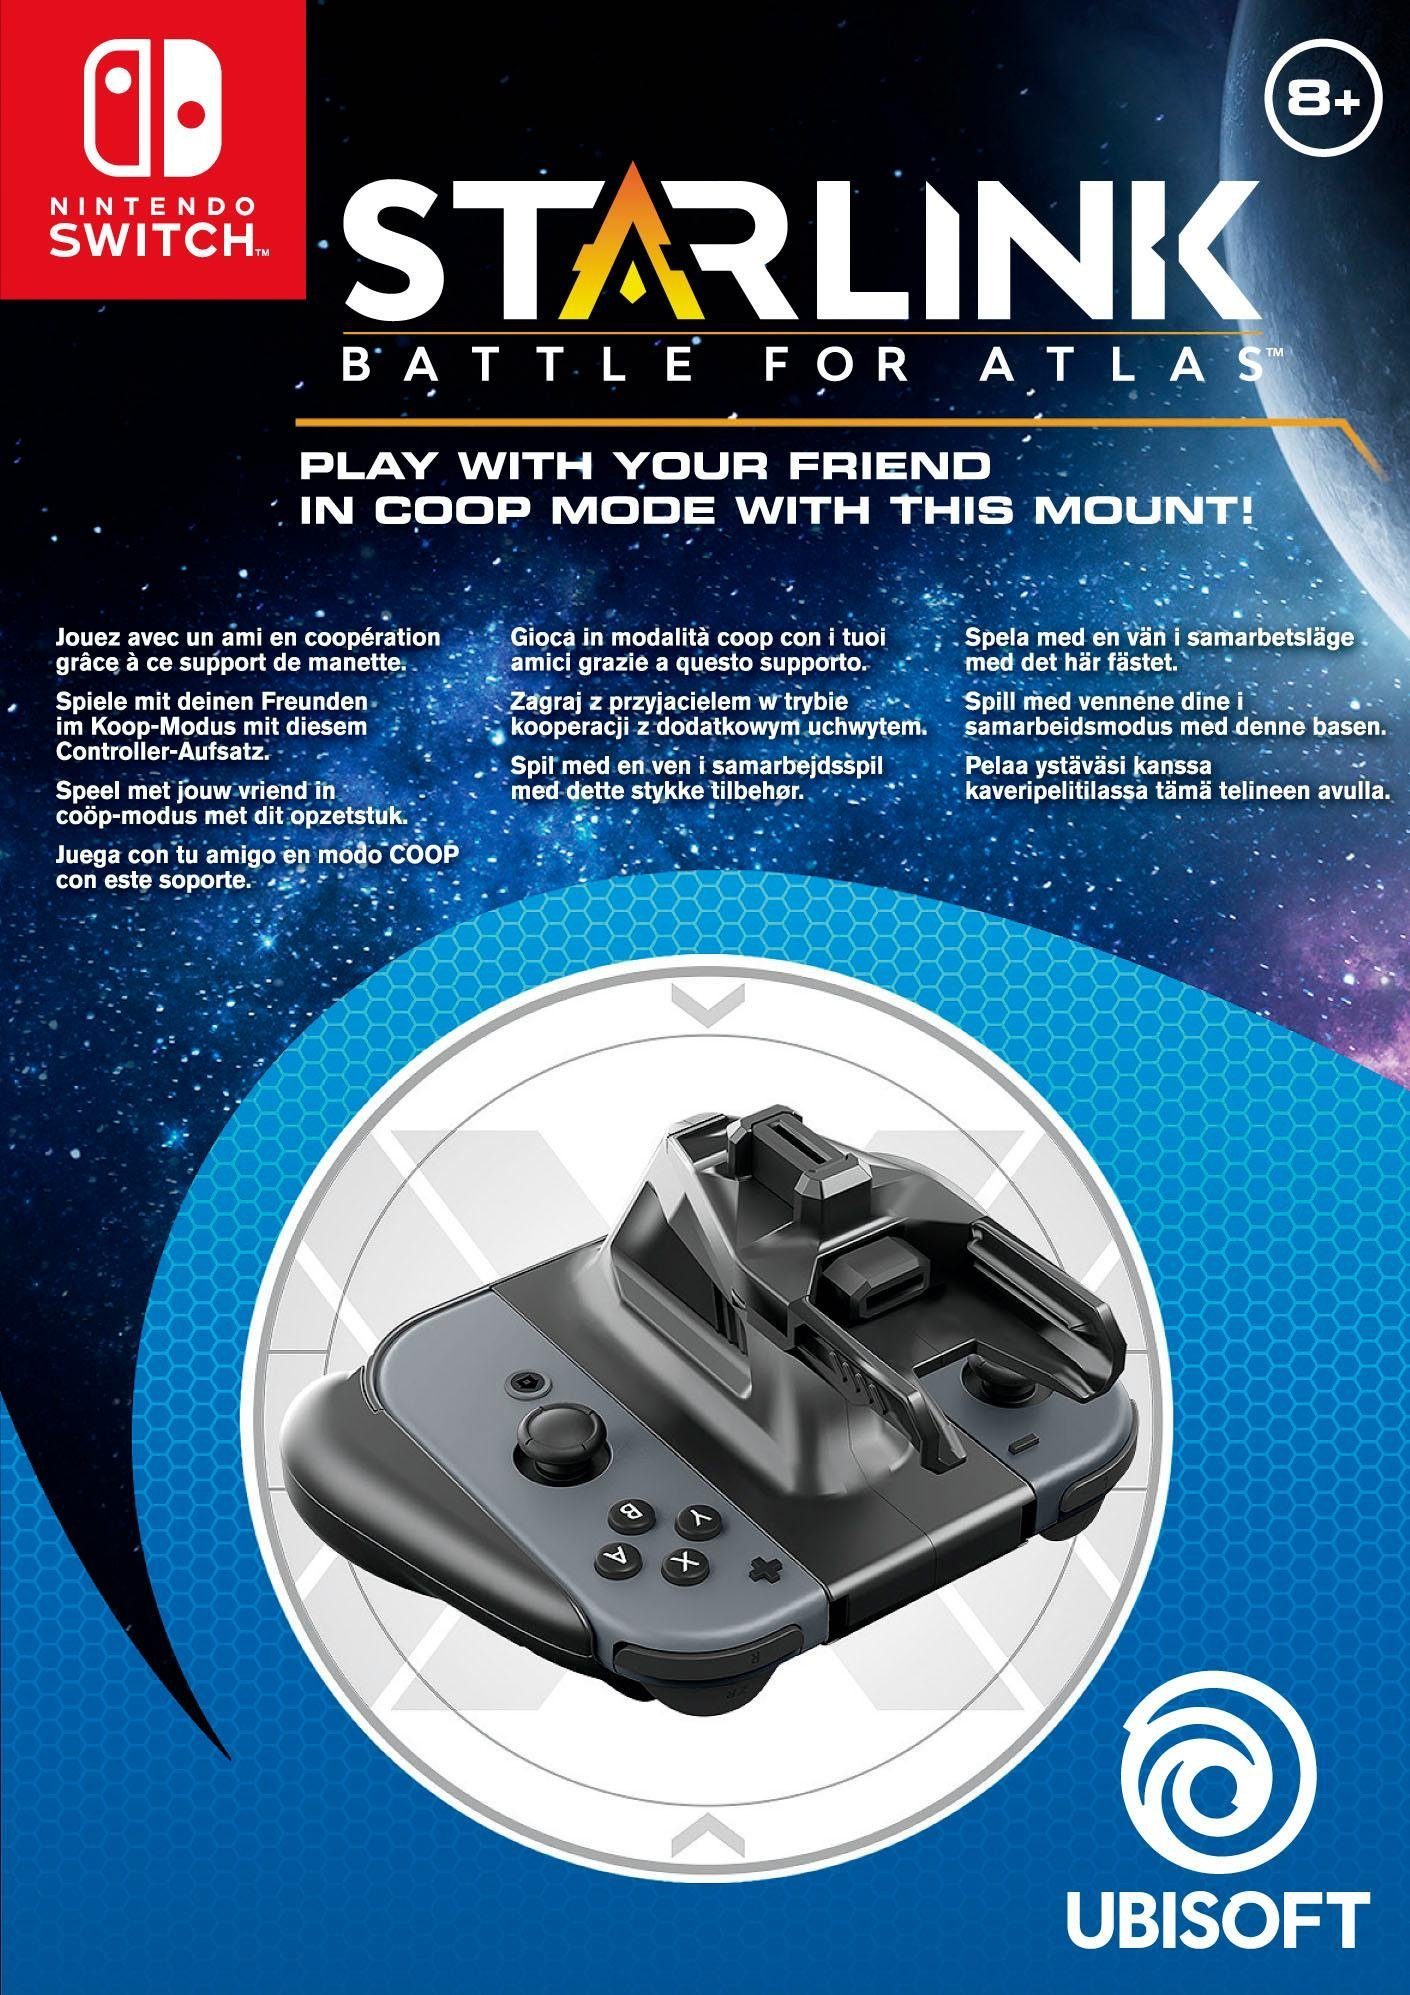 Switch Starlink MOUNT CO-OP Pack Controller Adapter